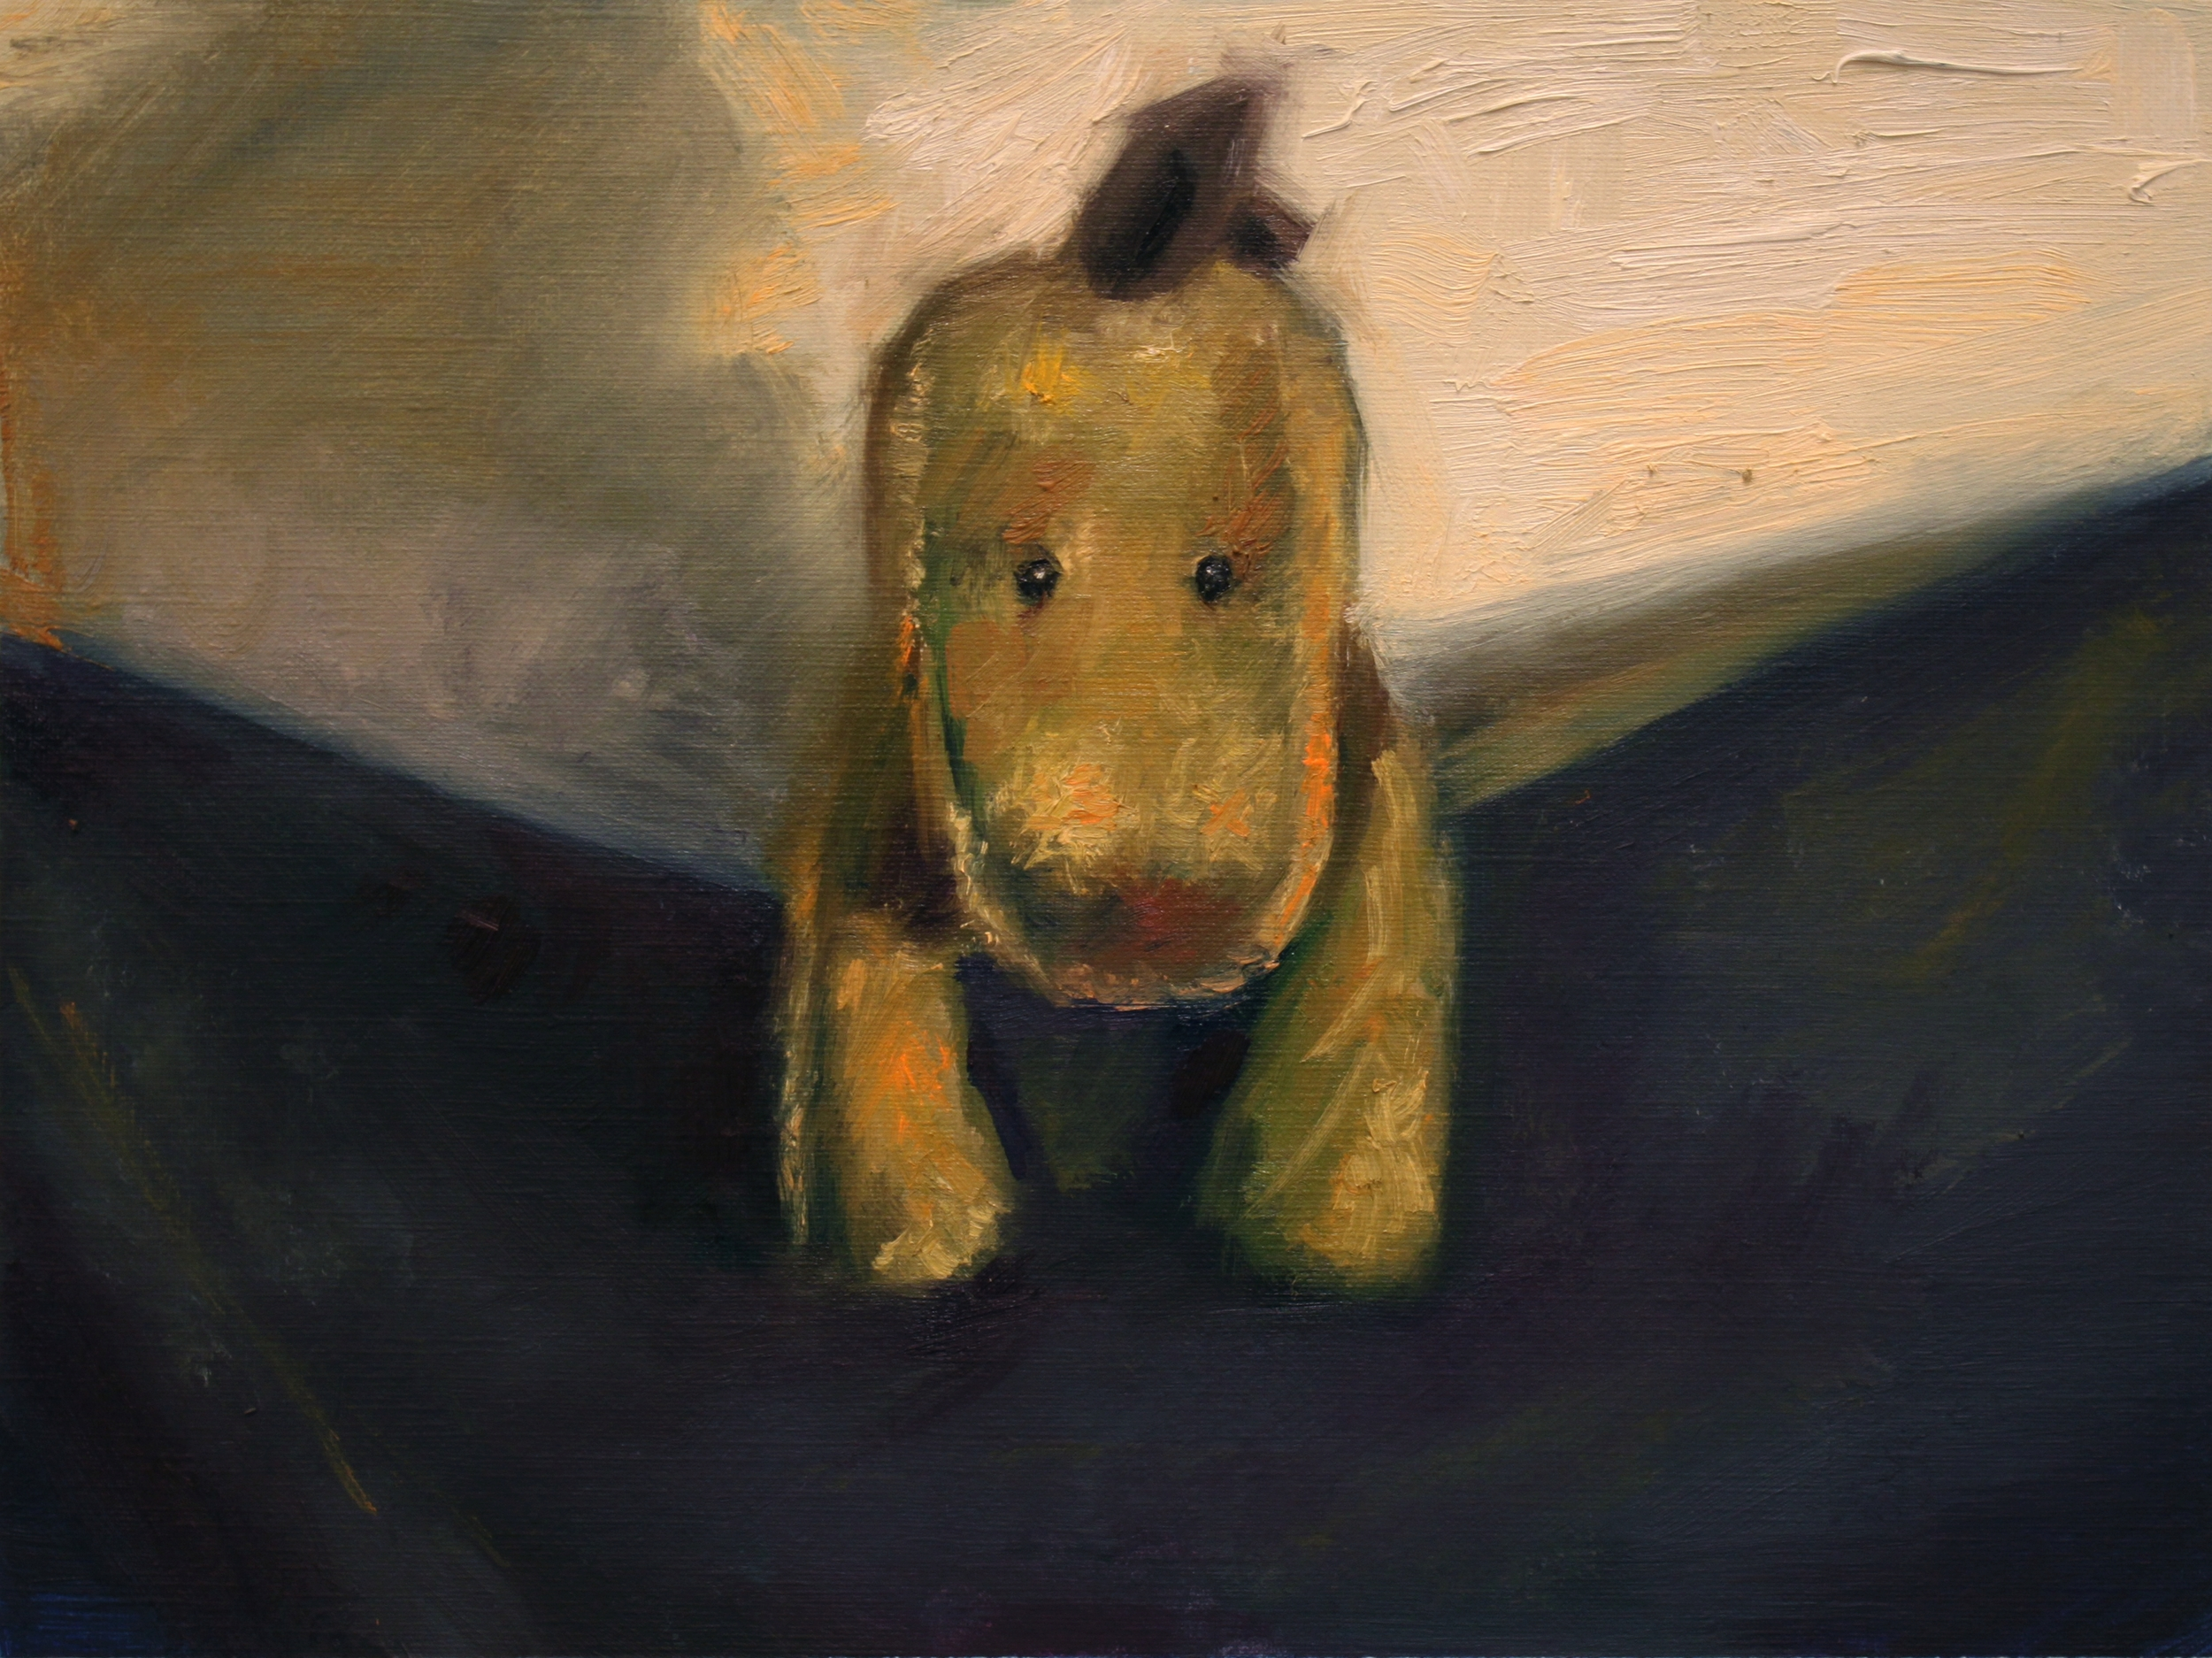 Waiting, 2014, oil on canvas paper, 9 x 12 inches